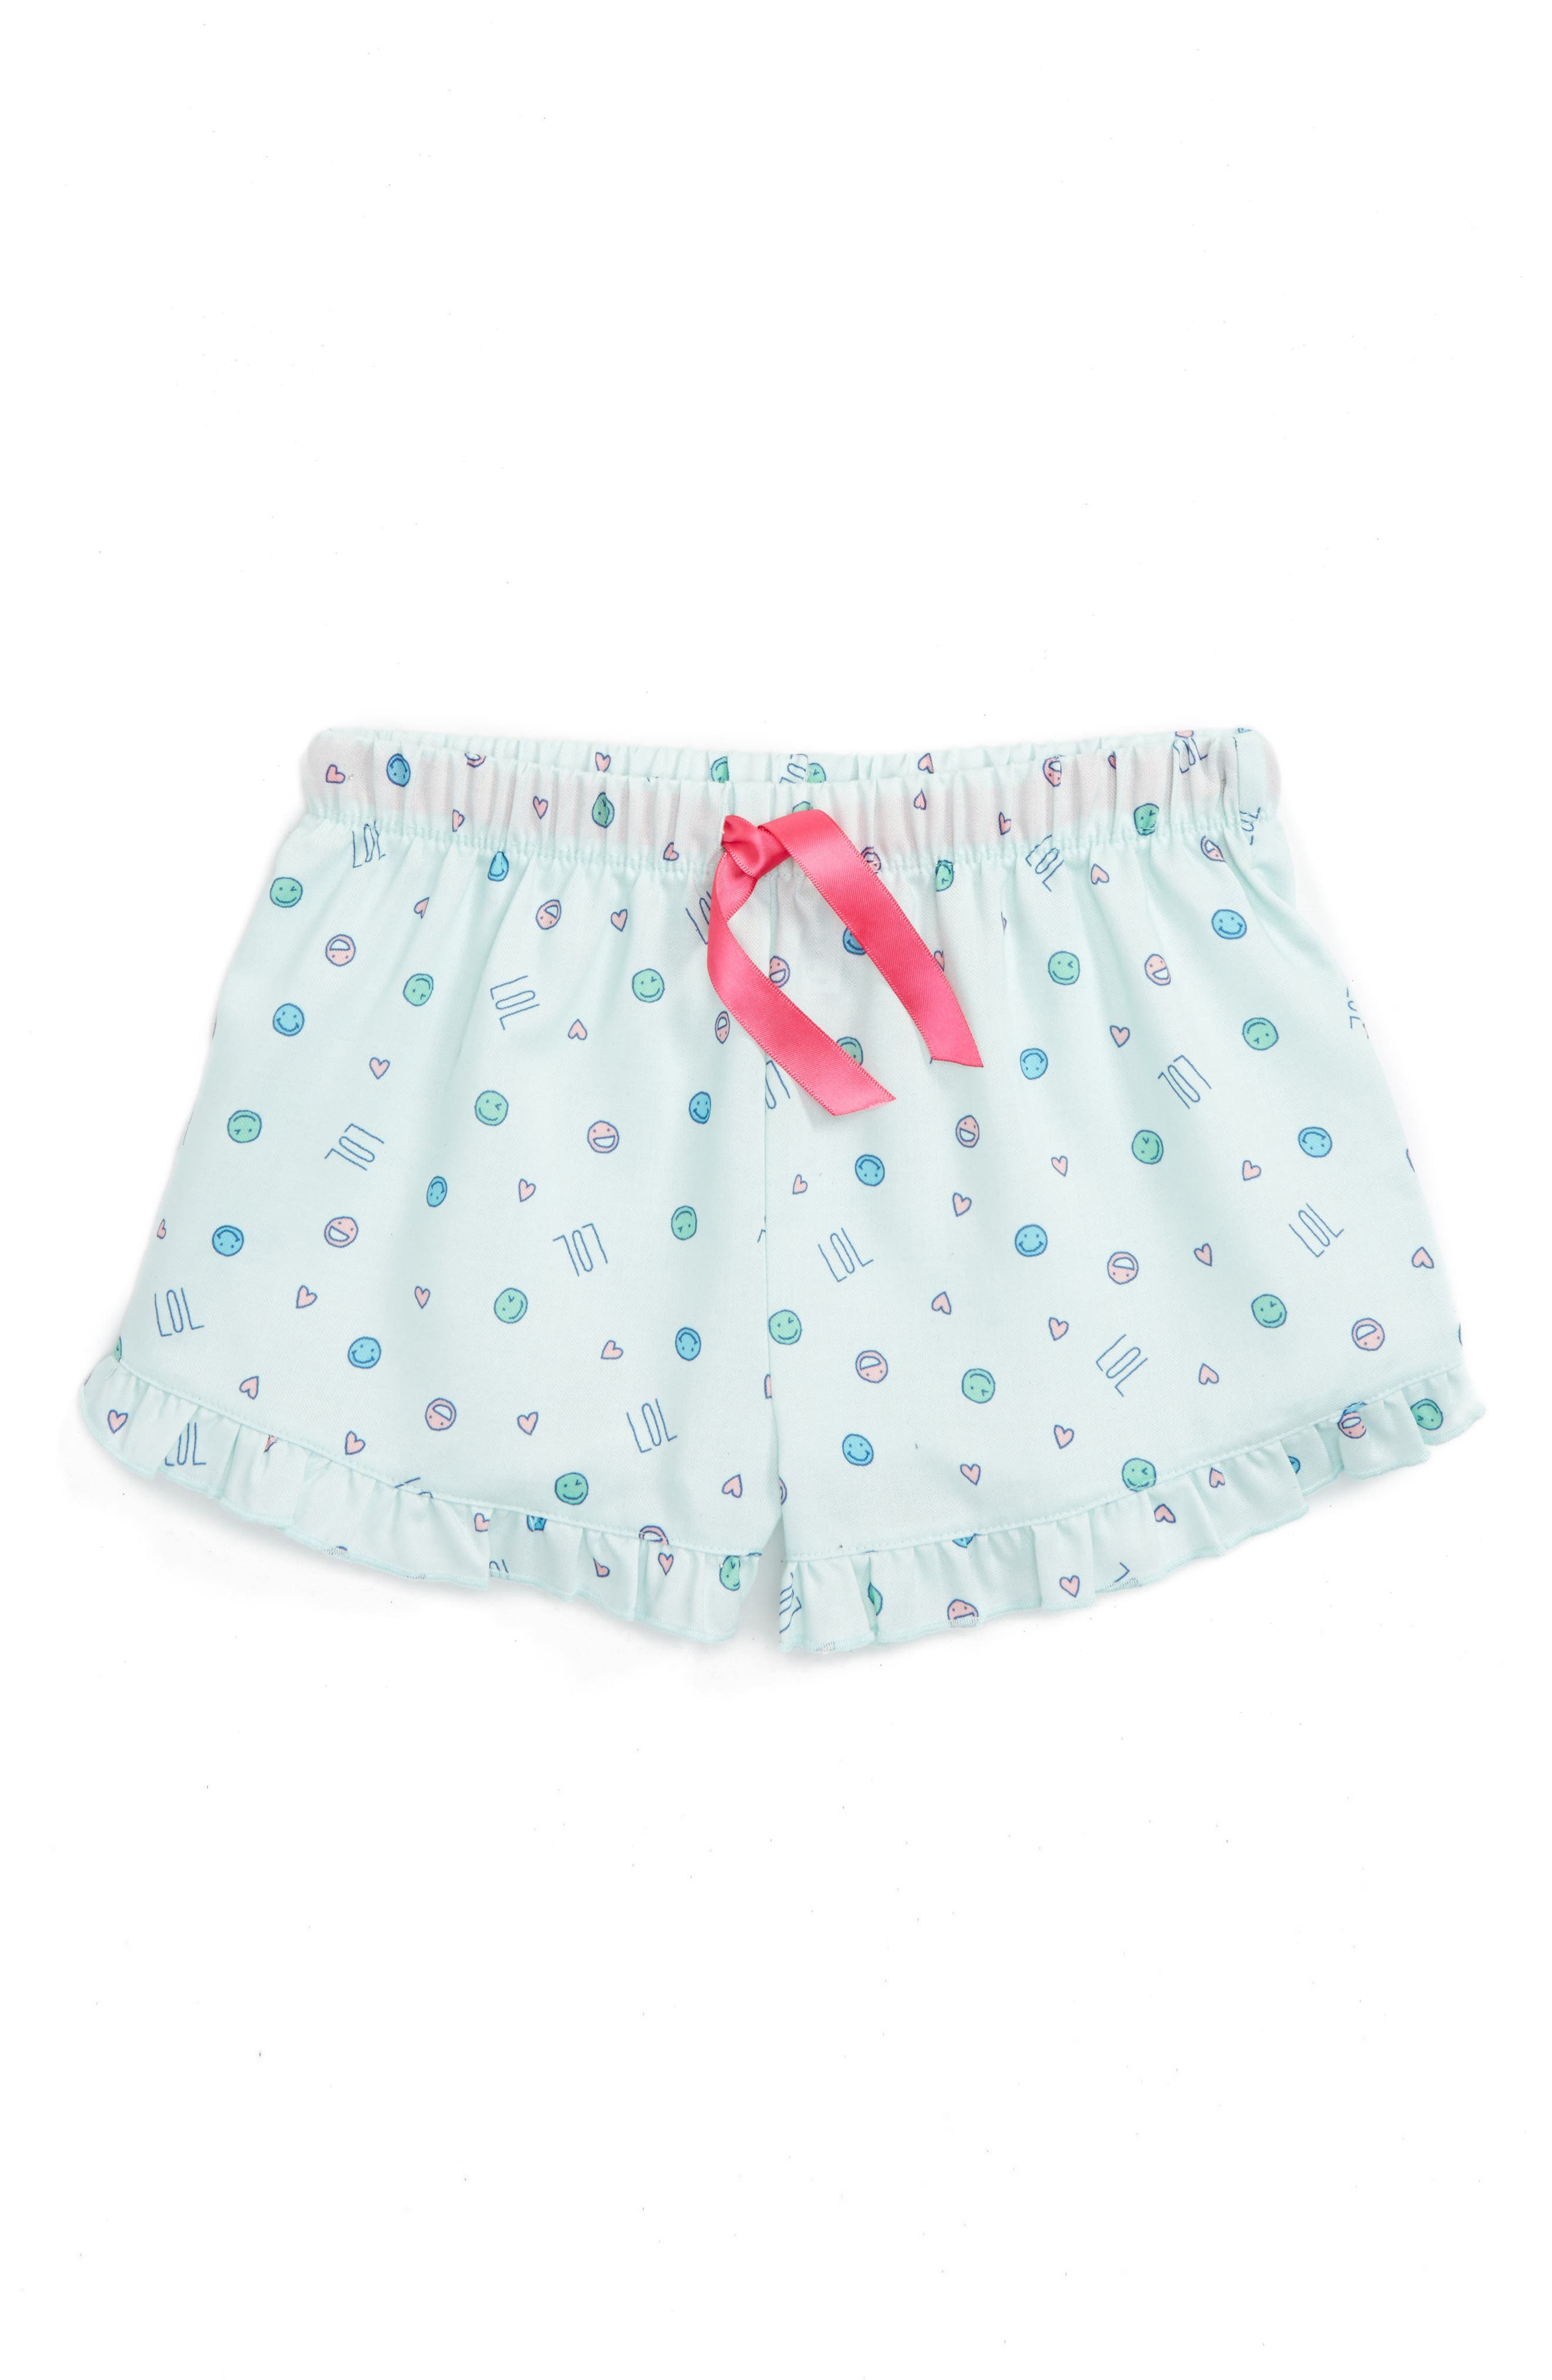 Alternate Image 1 Selected - Tucker + Tate Flannel Shorts (Big Girls)